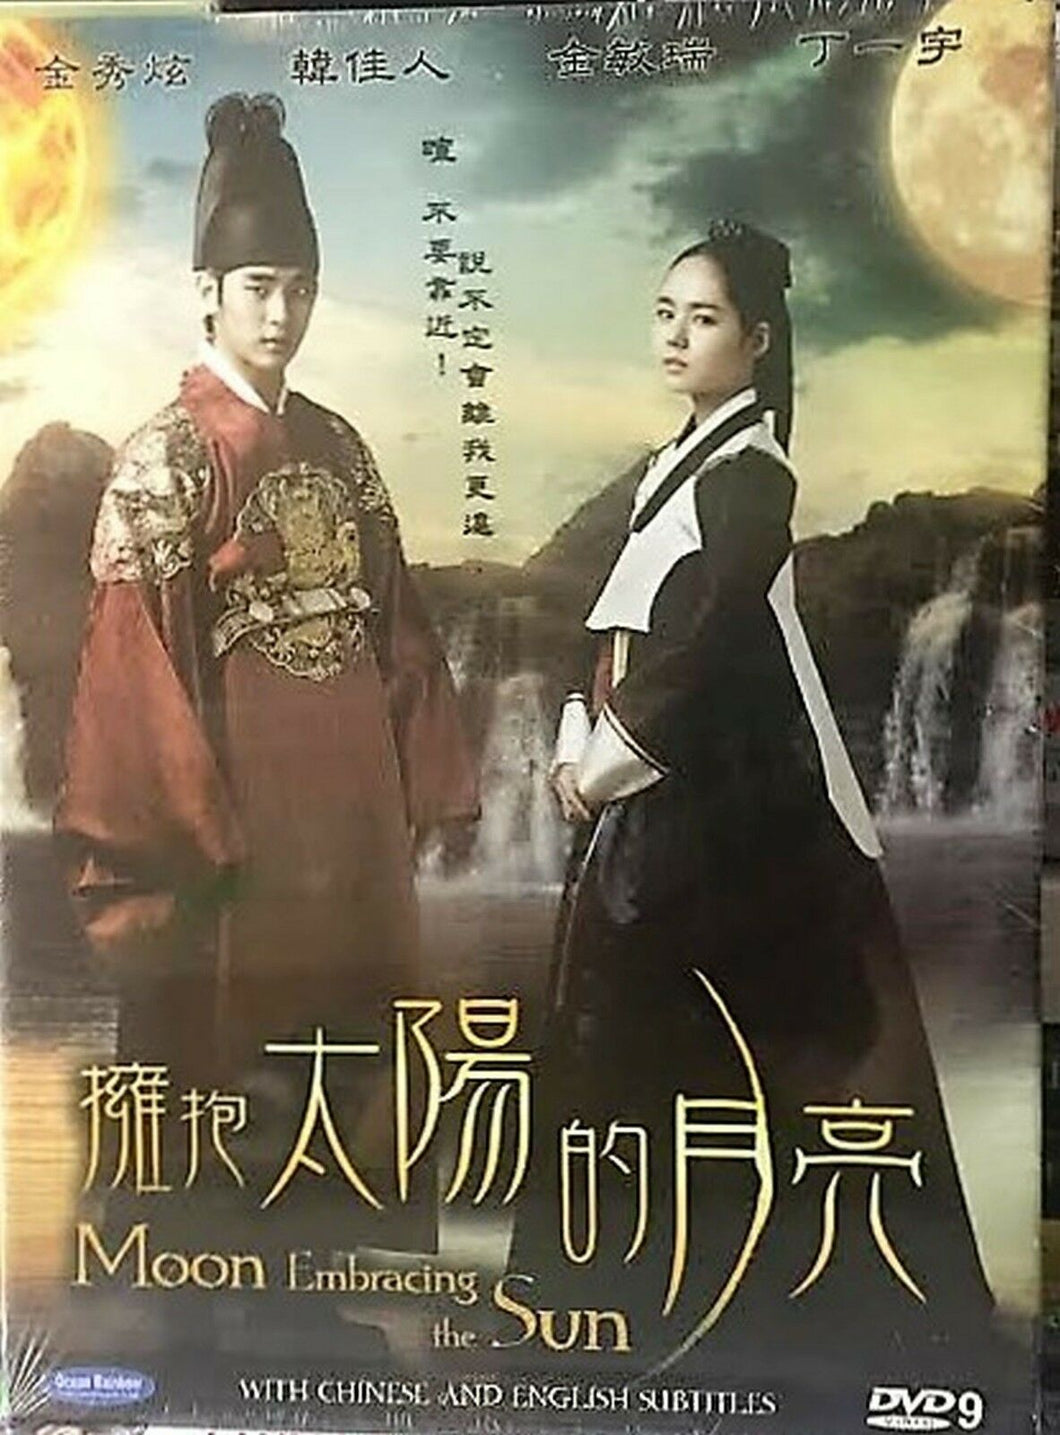 MOON THAT EMBRACING THE SUN 2012 KOREAN TV (1-20 end) DVD ENGLISH SUB (REGION FREE)